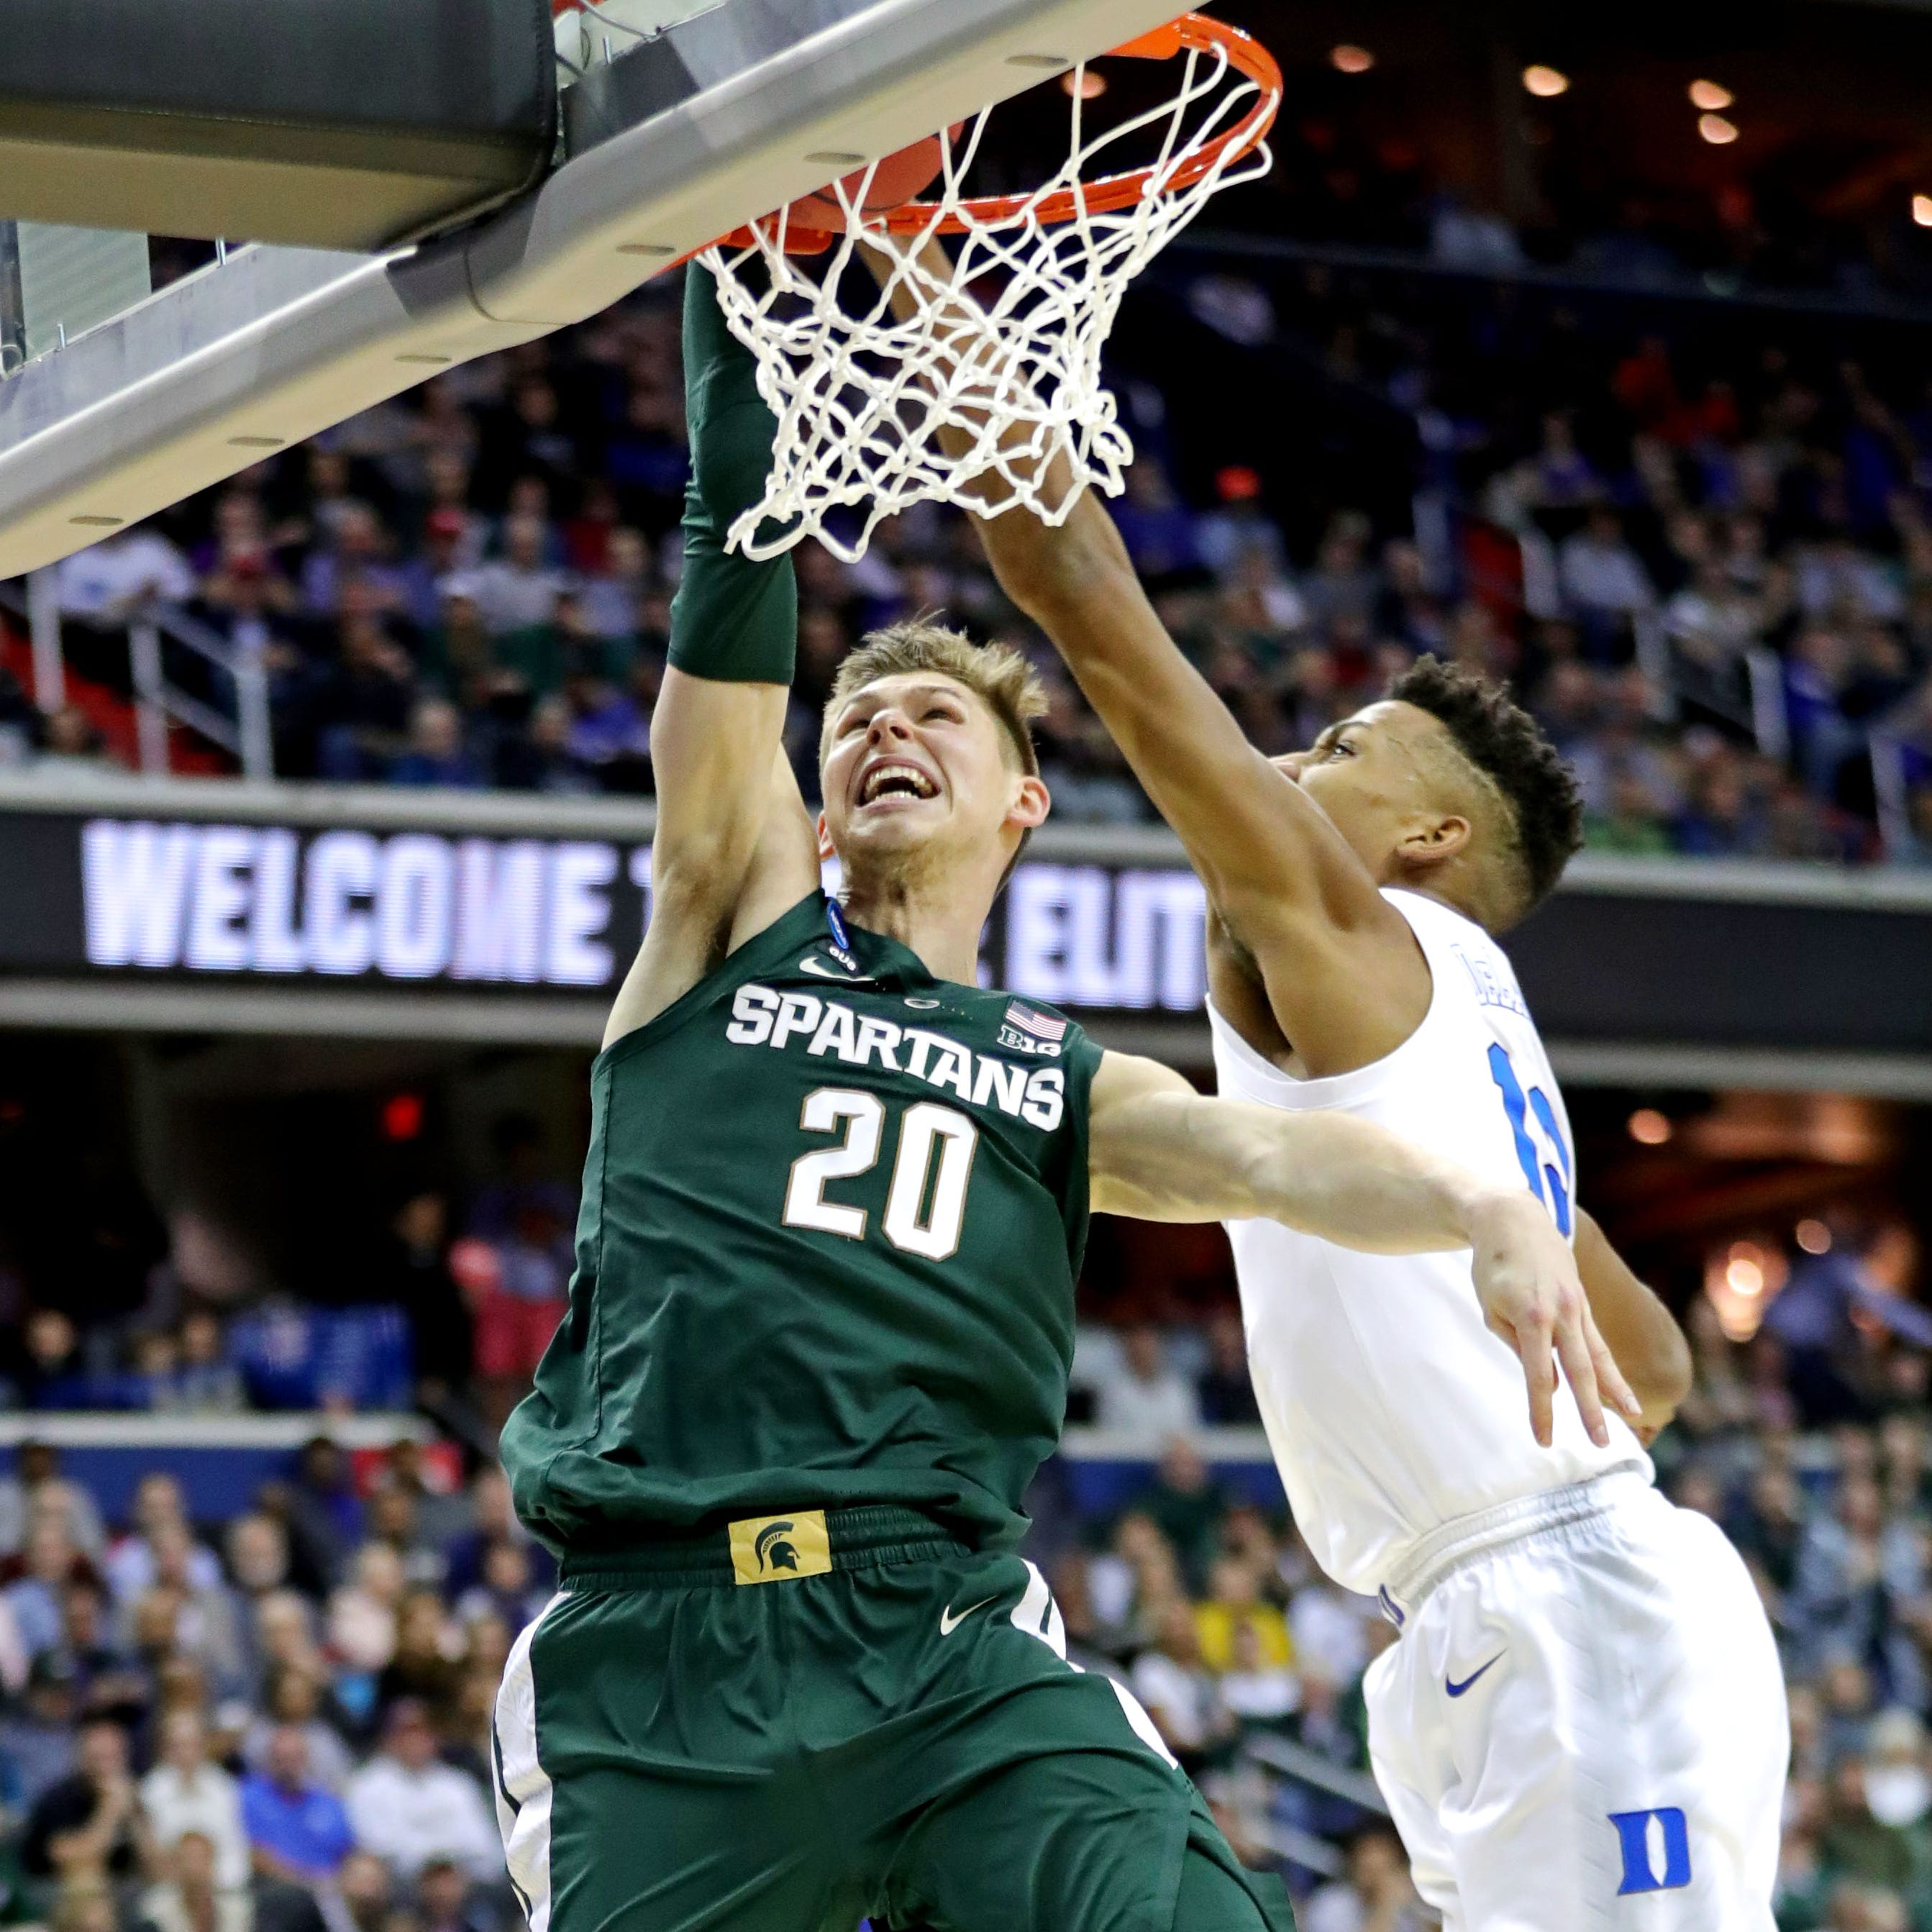 Michigan State's Matt McQuaid dunked on Duke and fans lost their minds